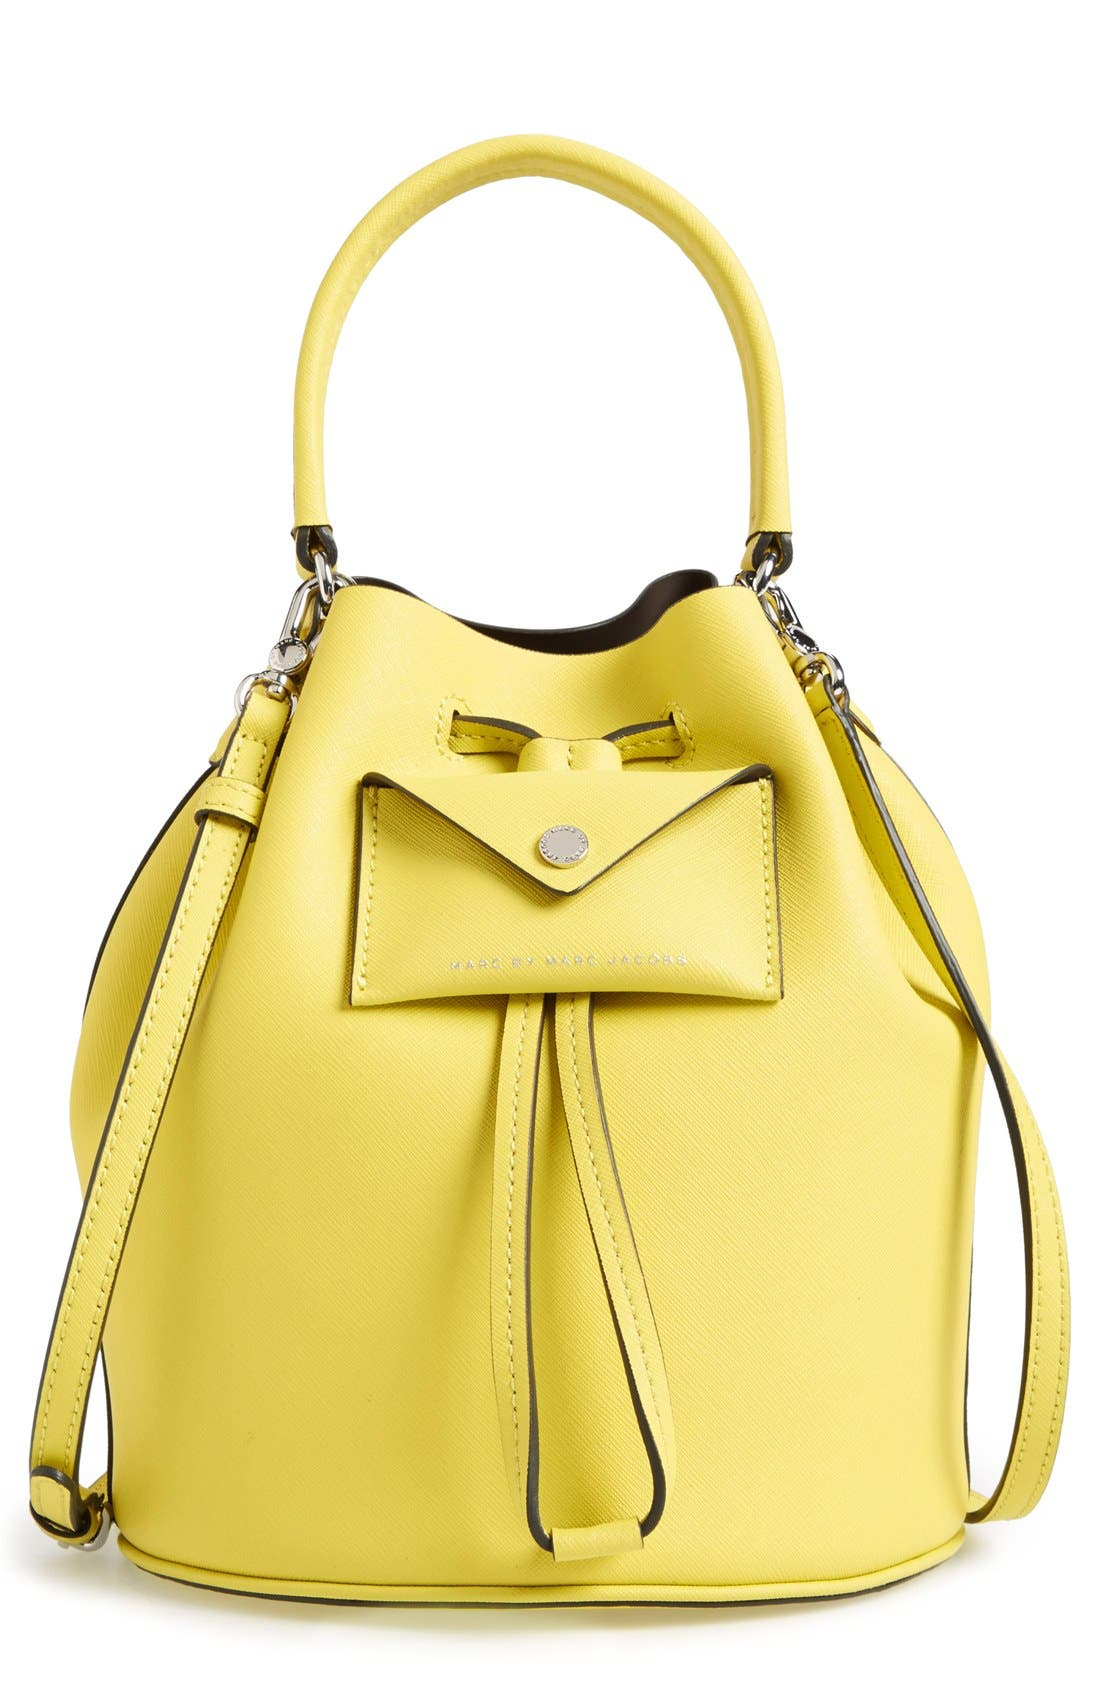 Main Image - MARC BY MARC JACOBS 'Metropoli' Leather Bucket Bag